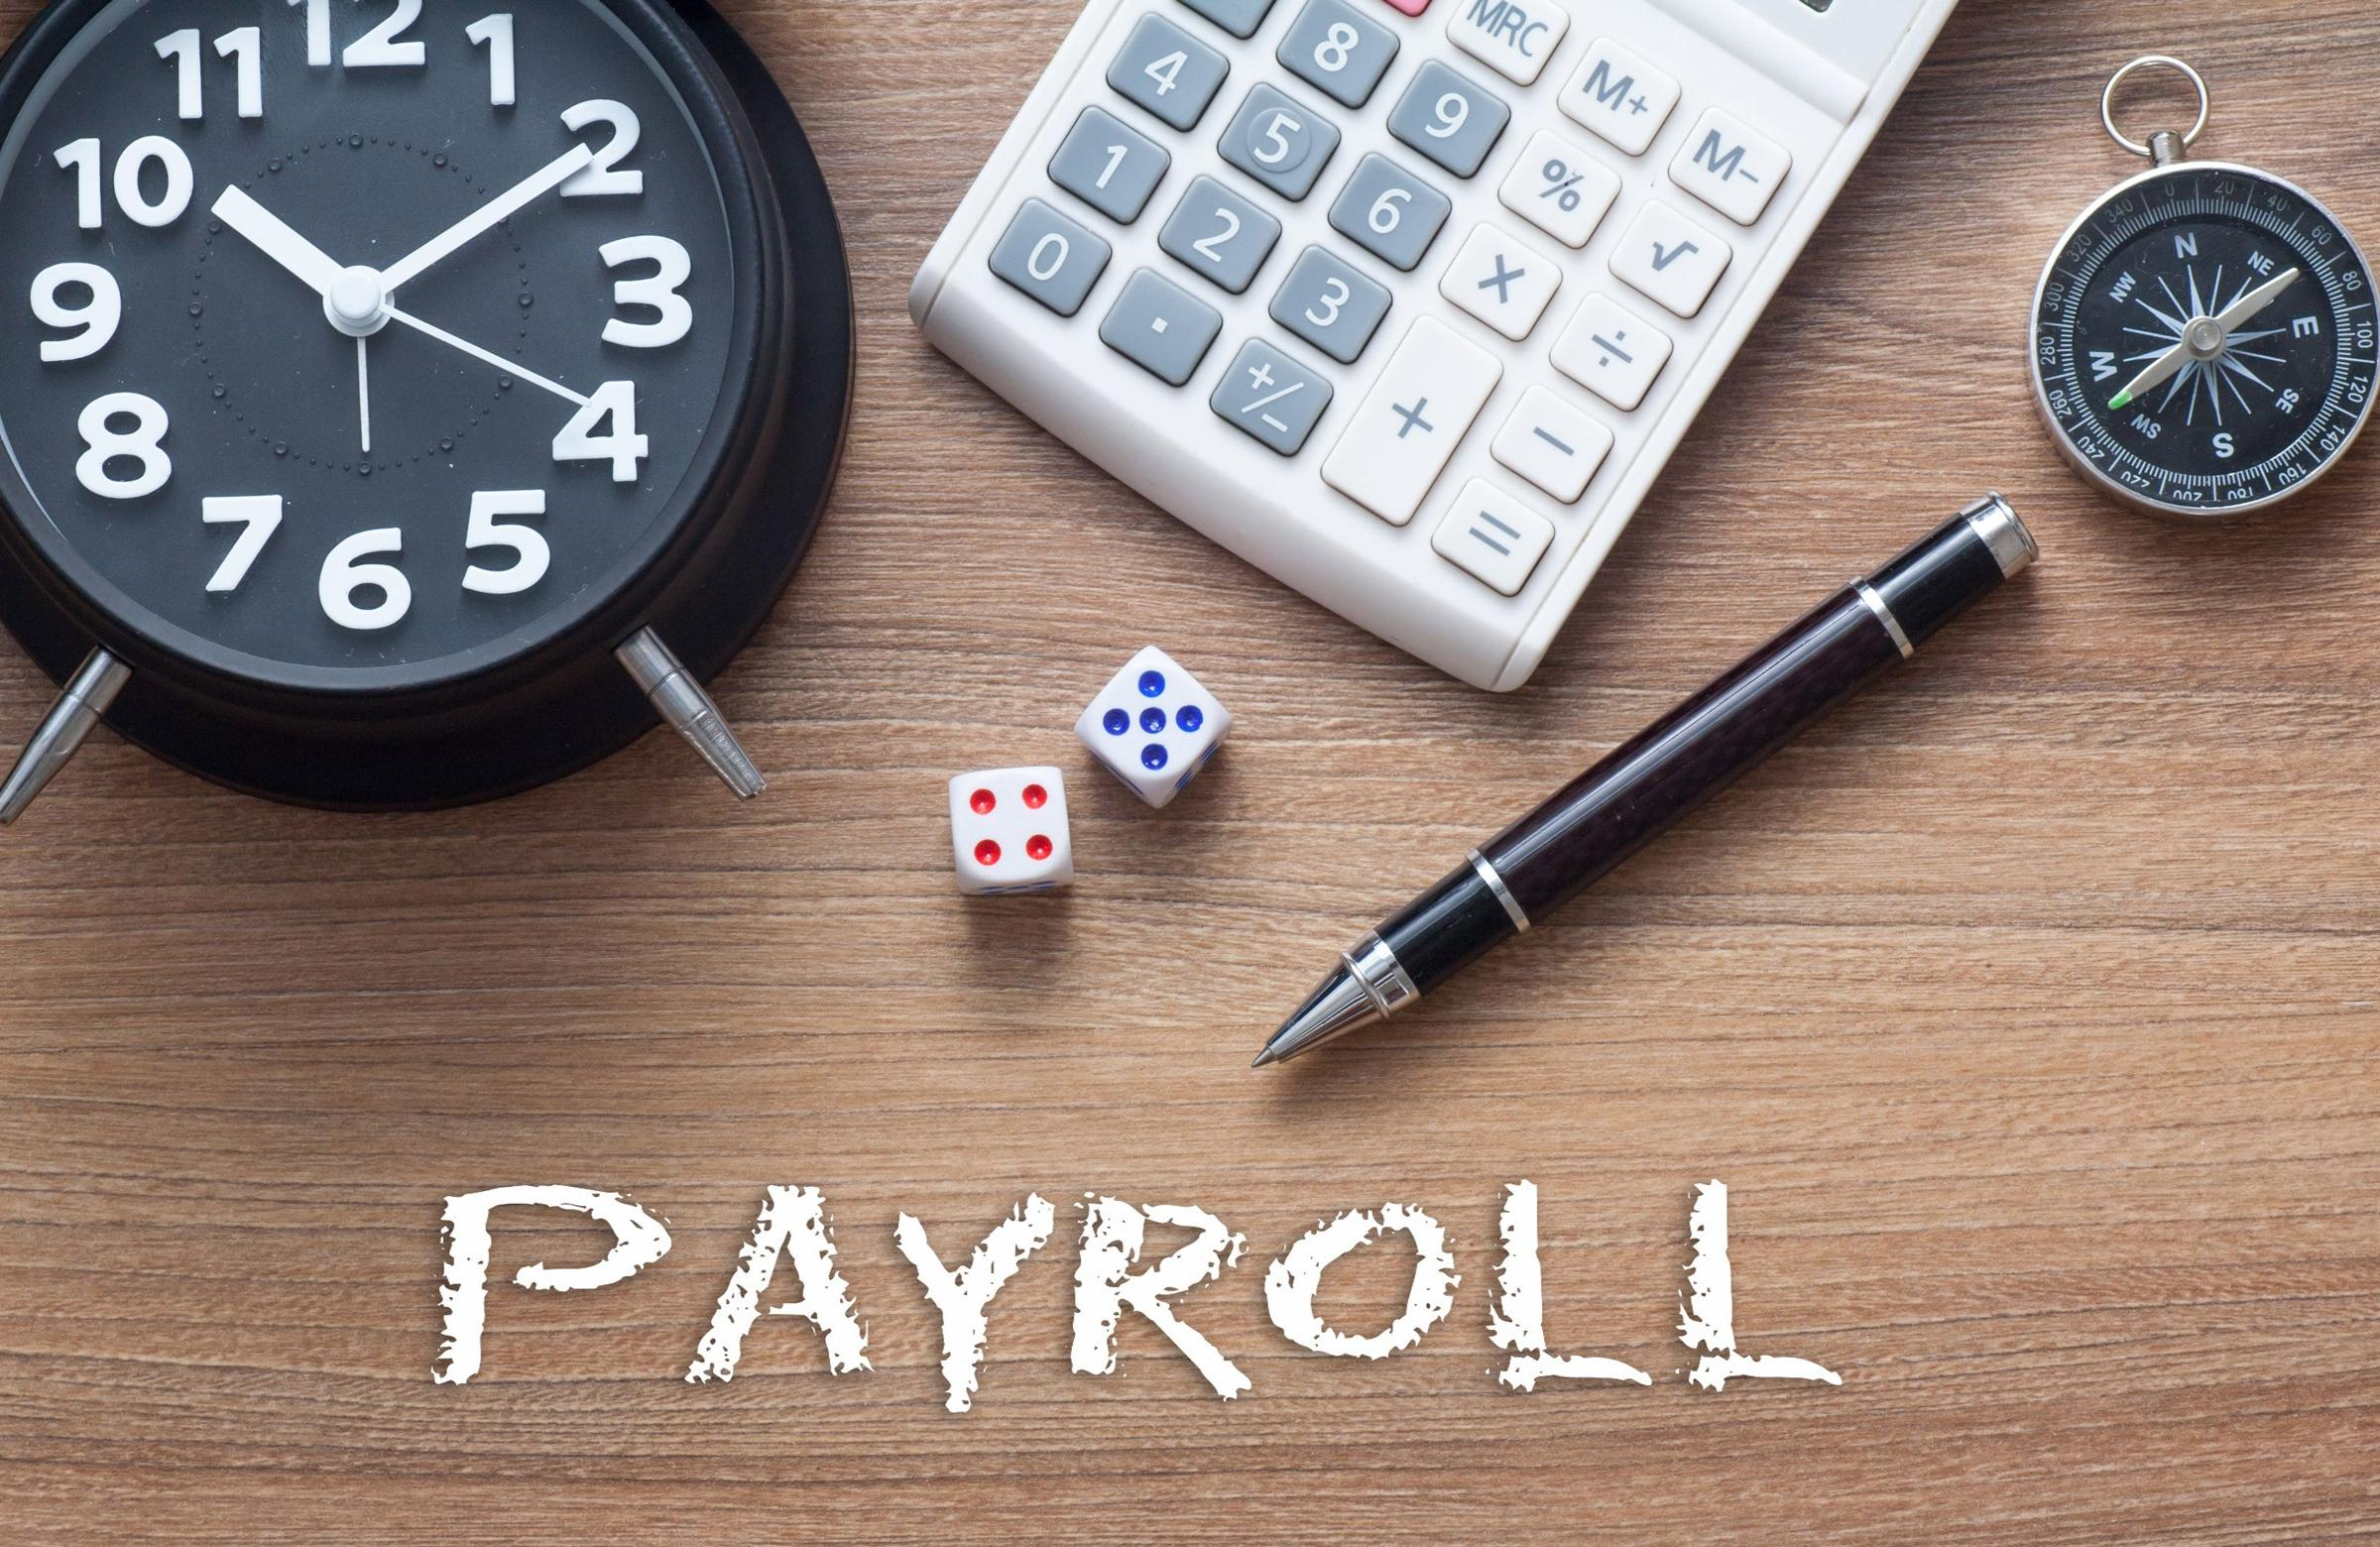 The Top 5 Reasons Why Small Businesses Should Outsource Their Payroll